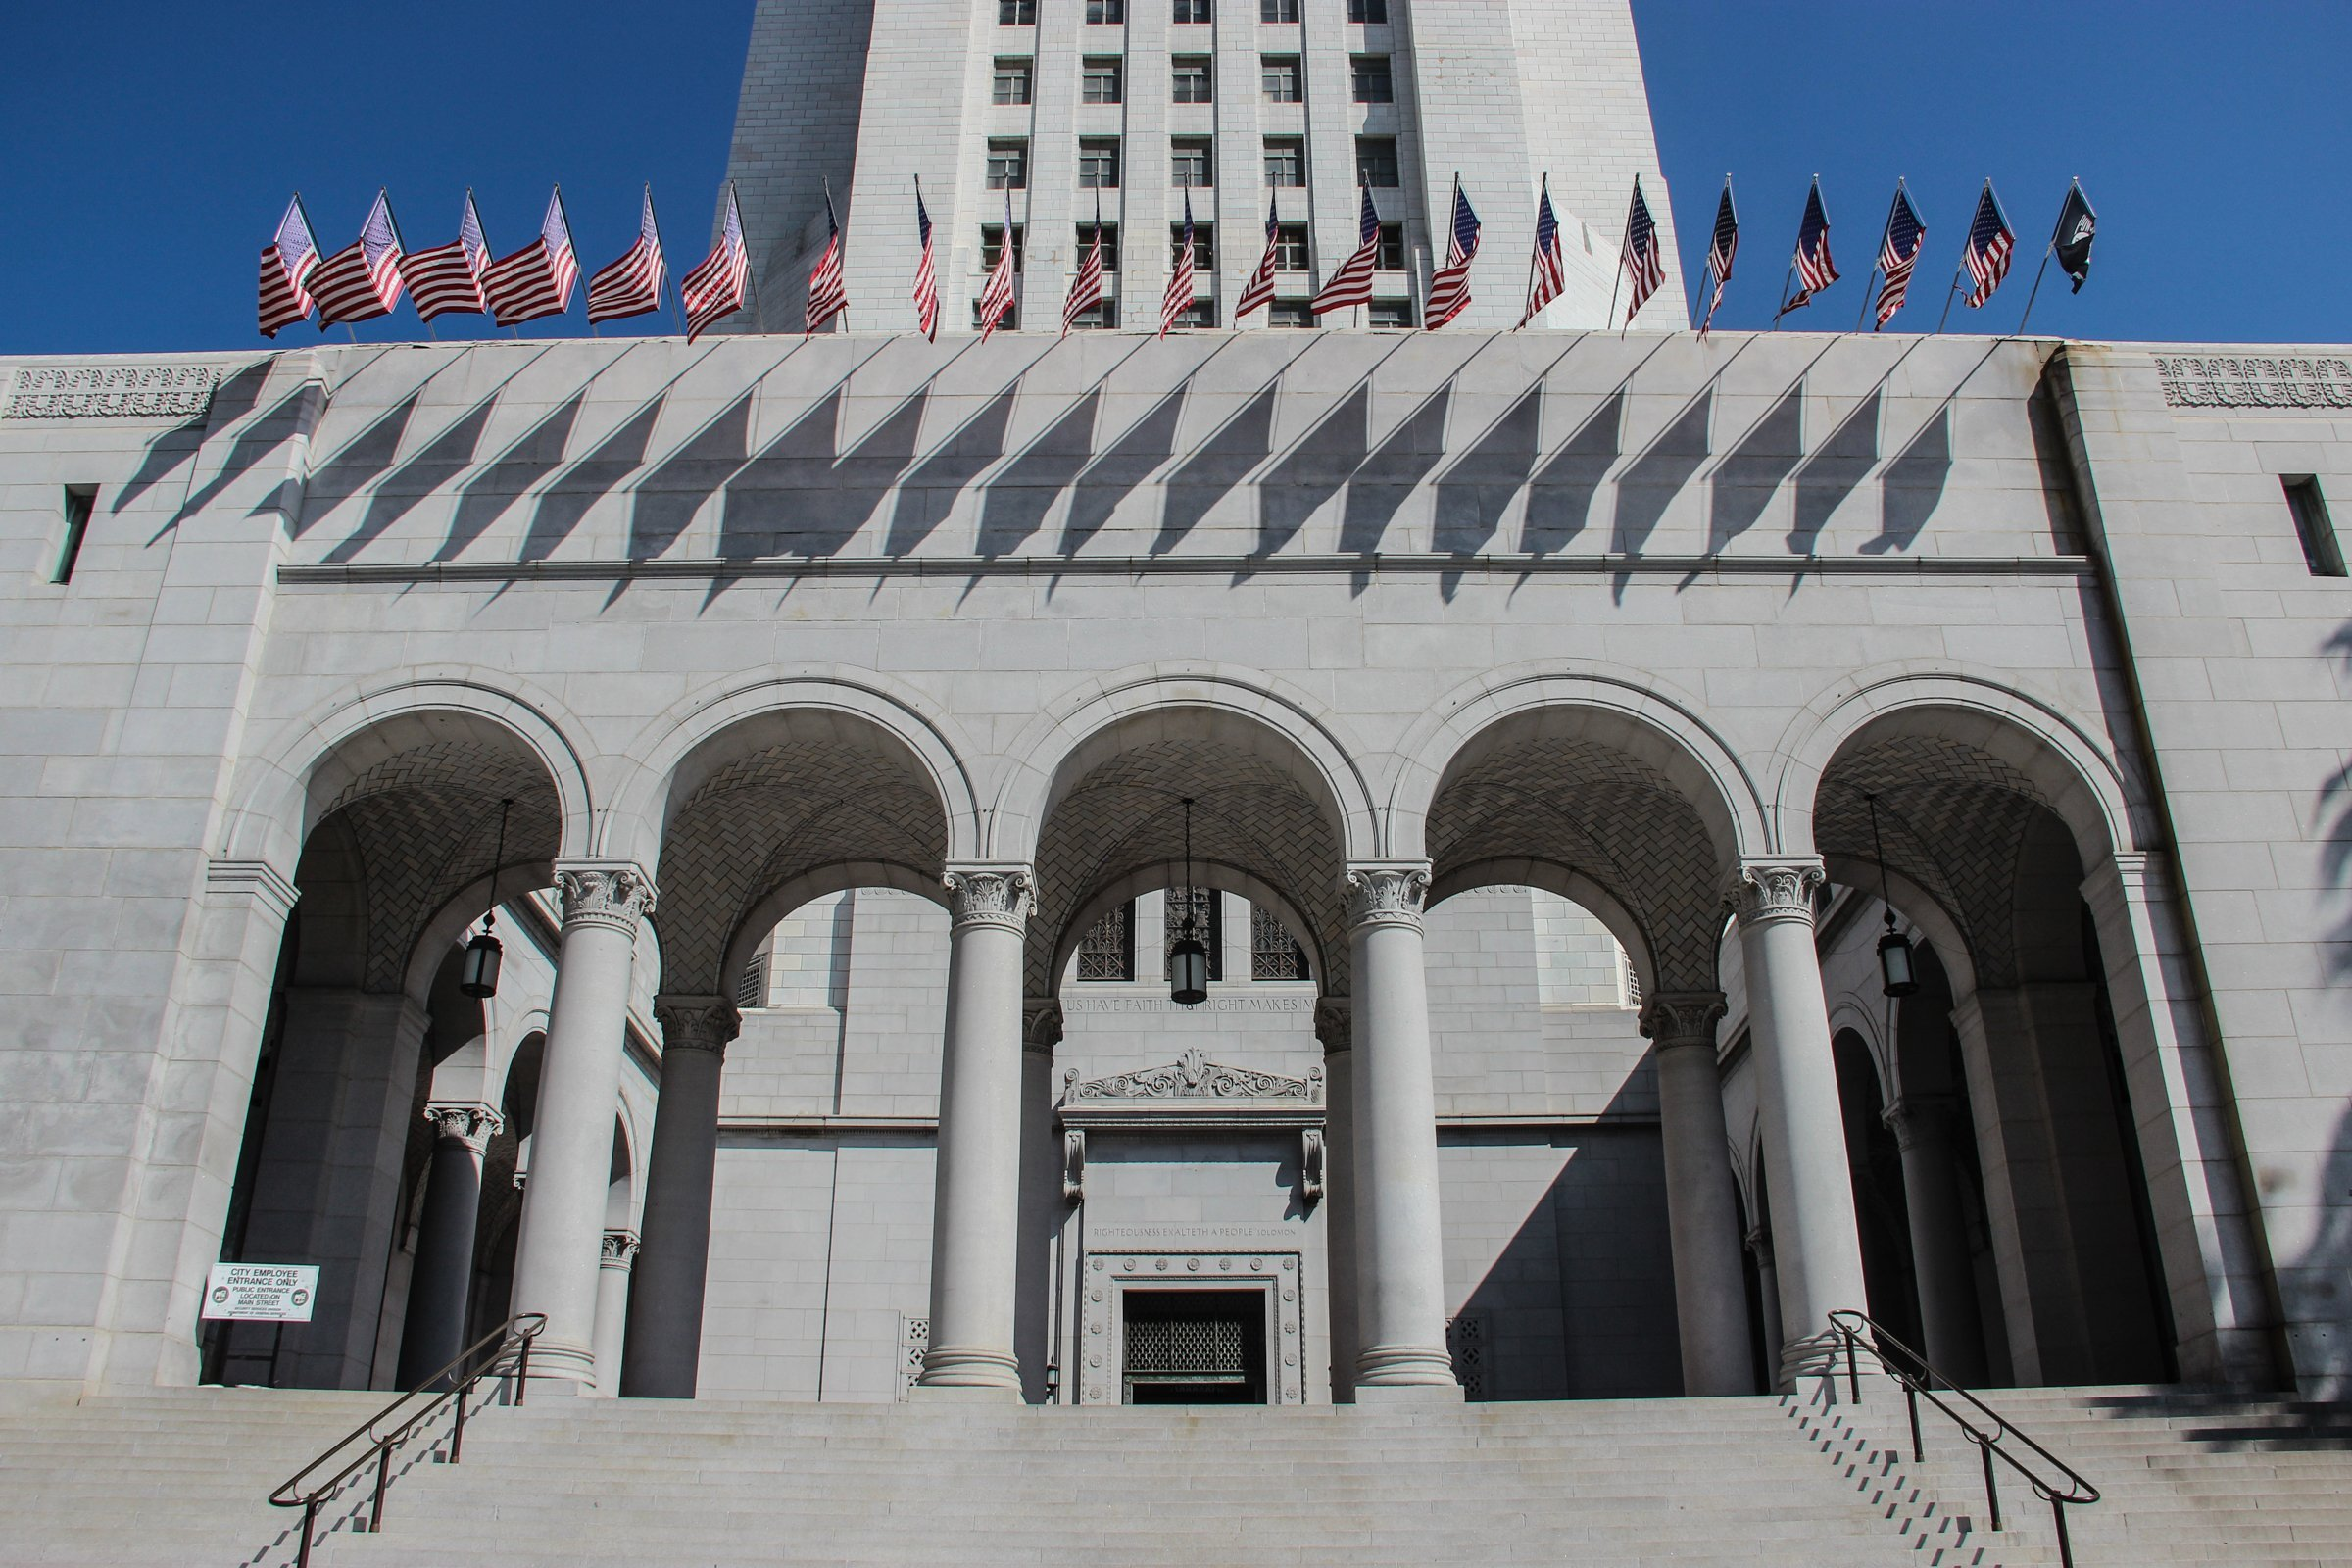 Multi Arched Entrance Of Los Angeles City Hall